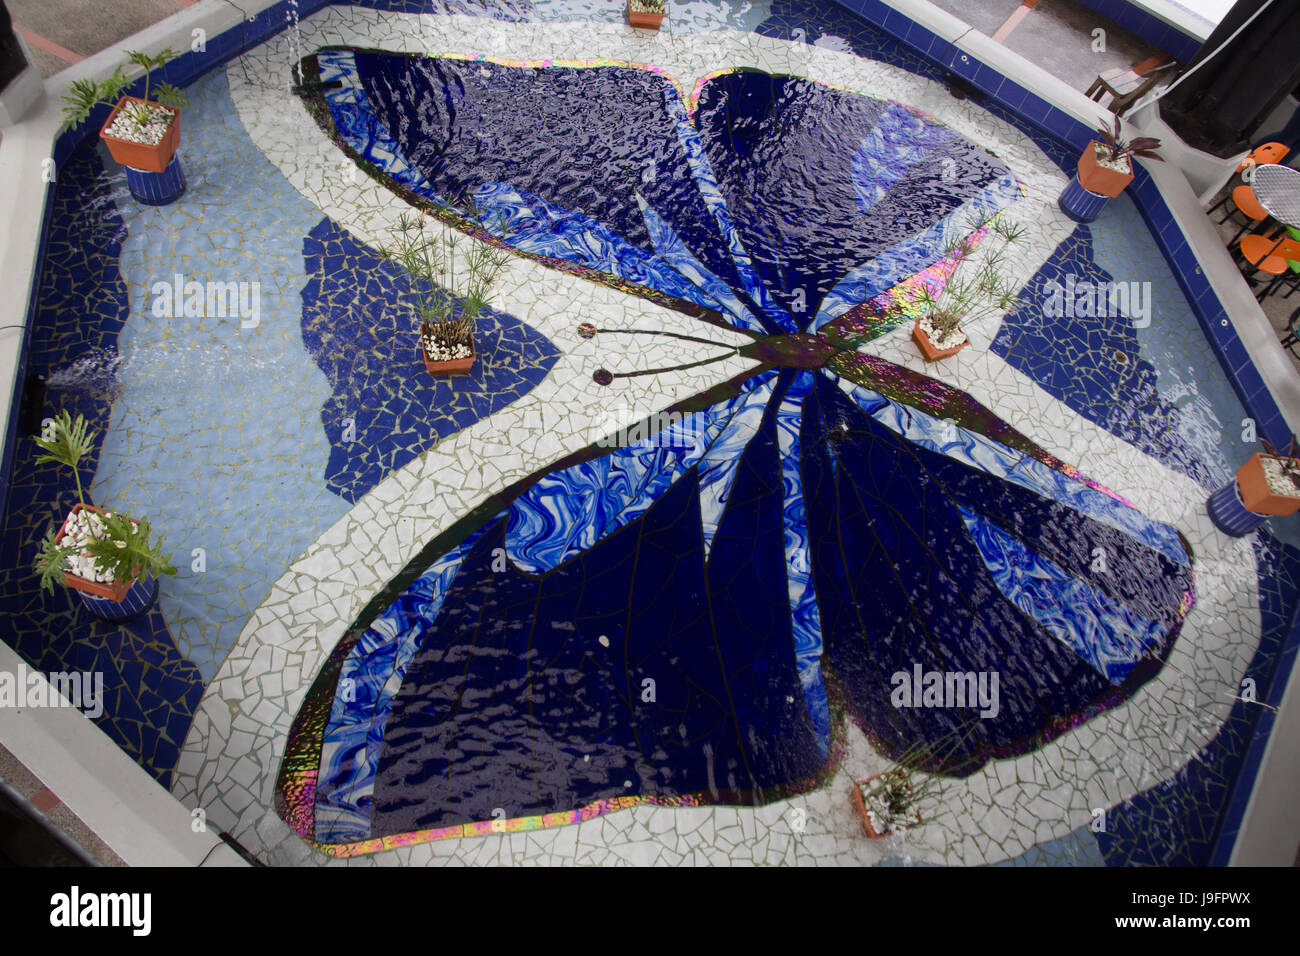 Butterfly pattern tiles in a fountin in Coombia South America - Stock Image